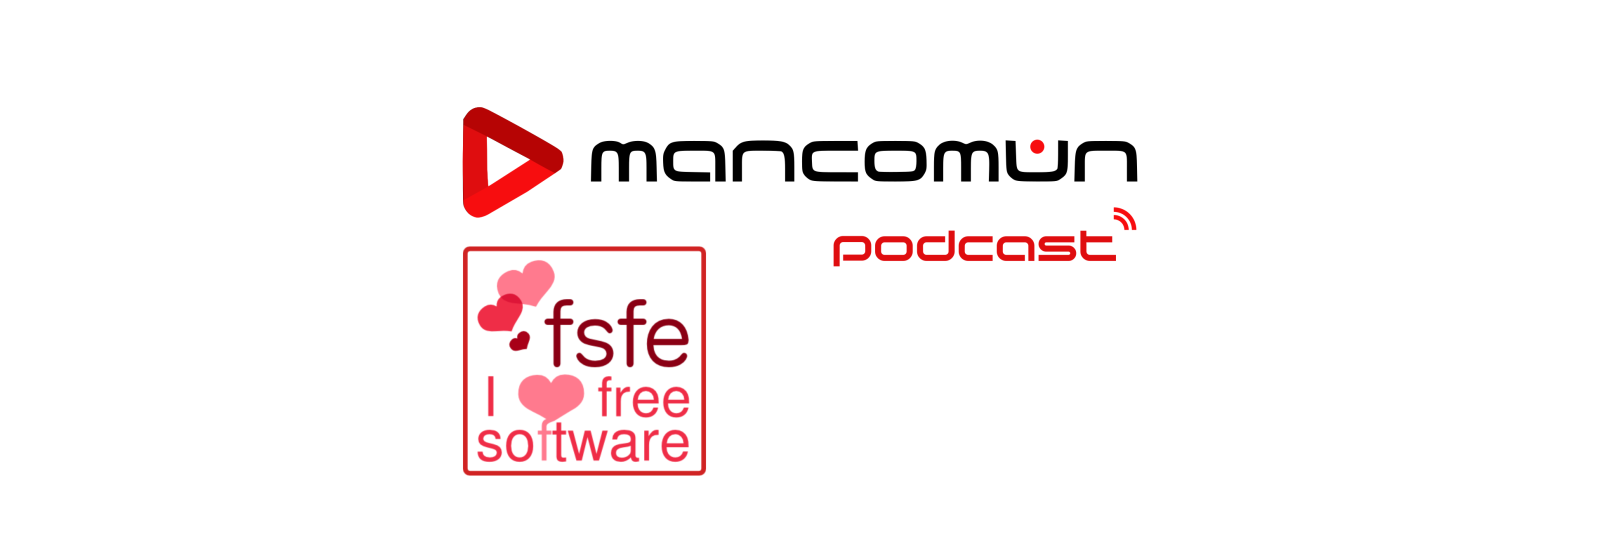 #23-Mancomún Podcast: I love Free Software Day 2020